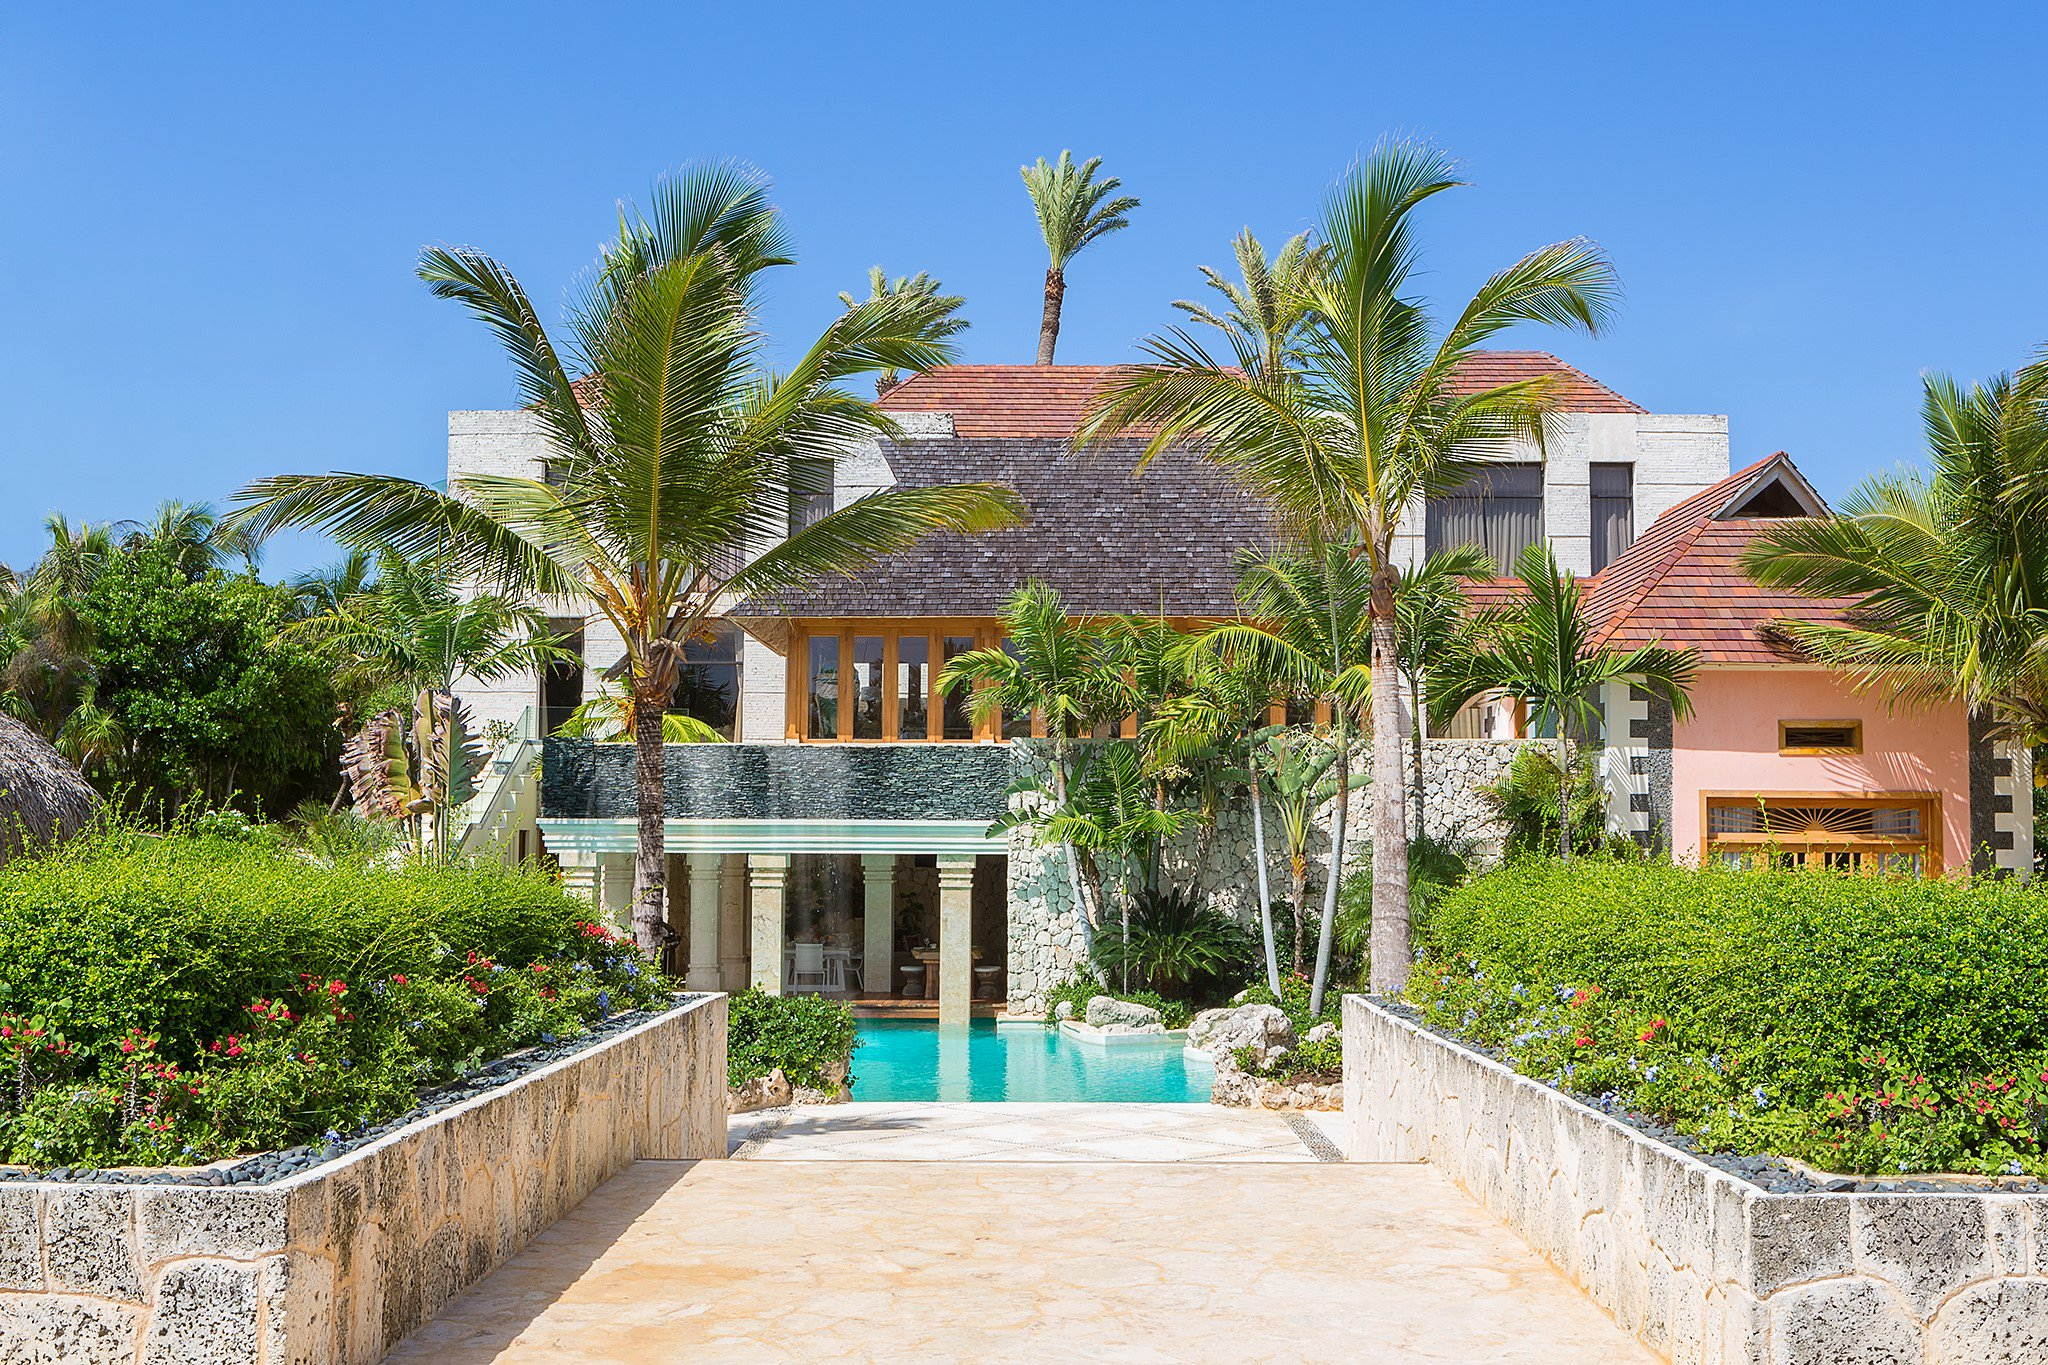 5 Bedrooms, 14,897 sq. ft.Jack Nicklaus Signature Golf Front Villa and Ocean Views